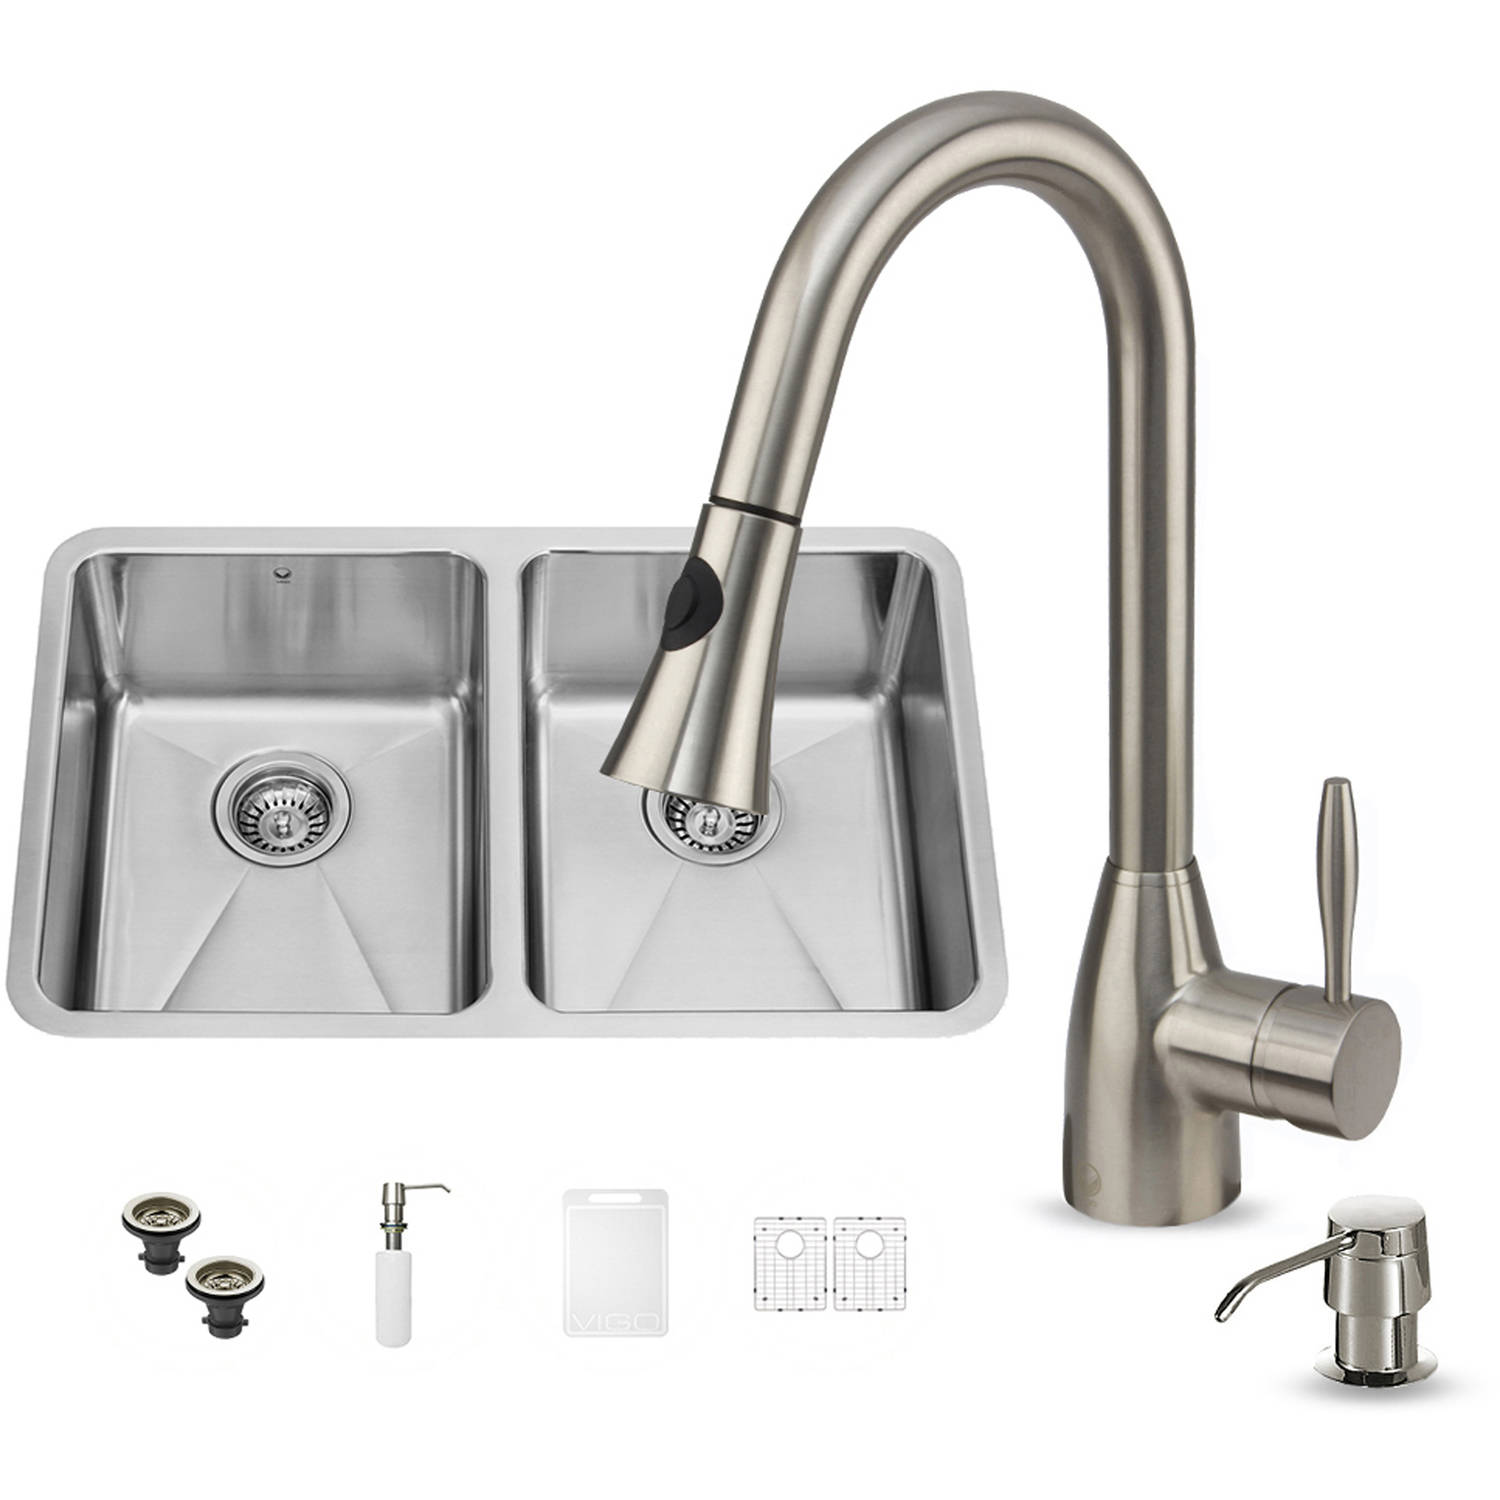 "Vigo All-in-One 29"" Undermount Stainless Steel Double Bowl Kitchen Sink and Faucet Set"